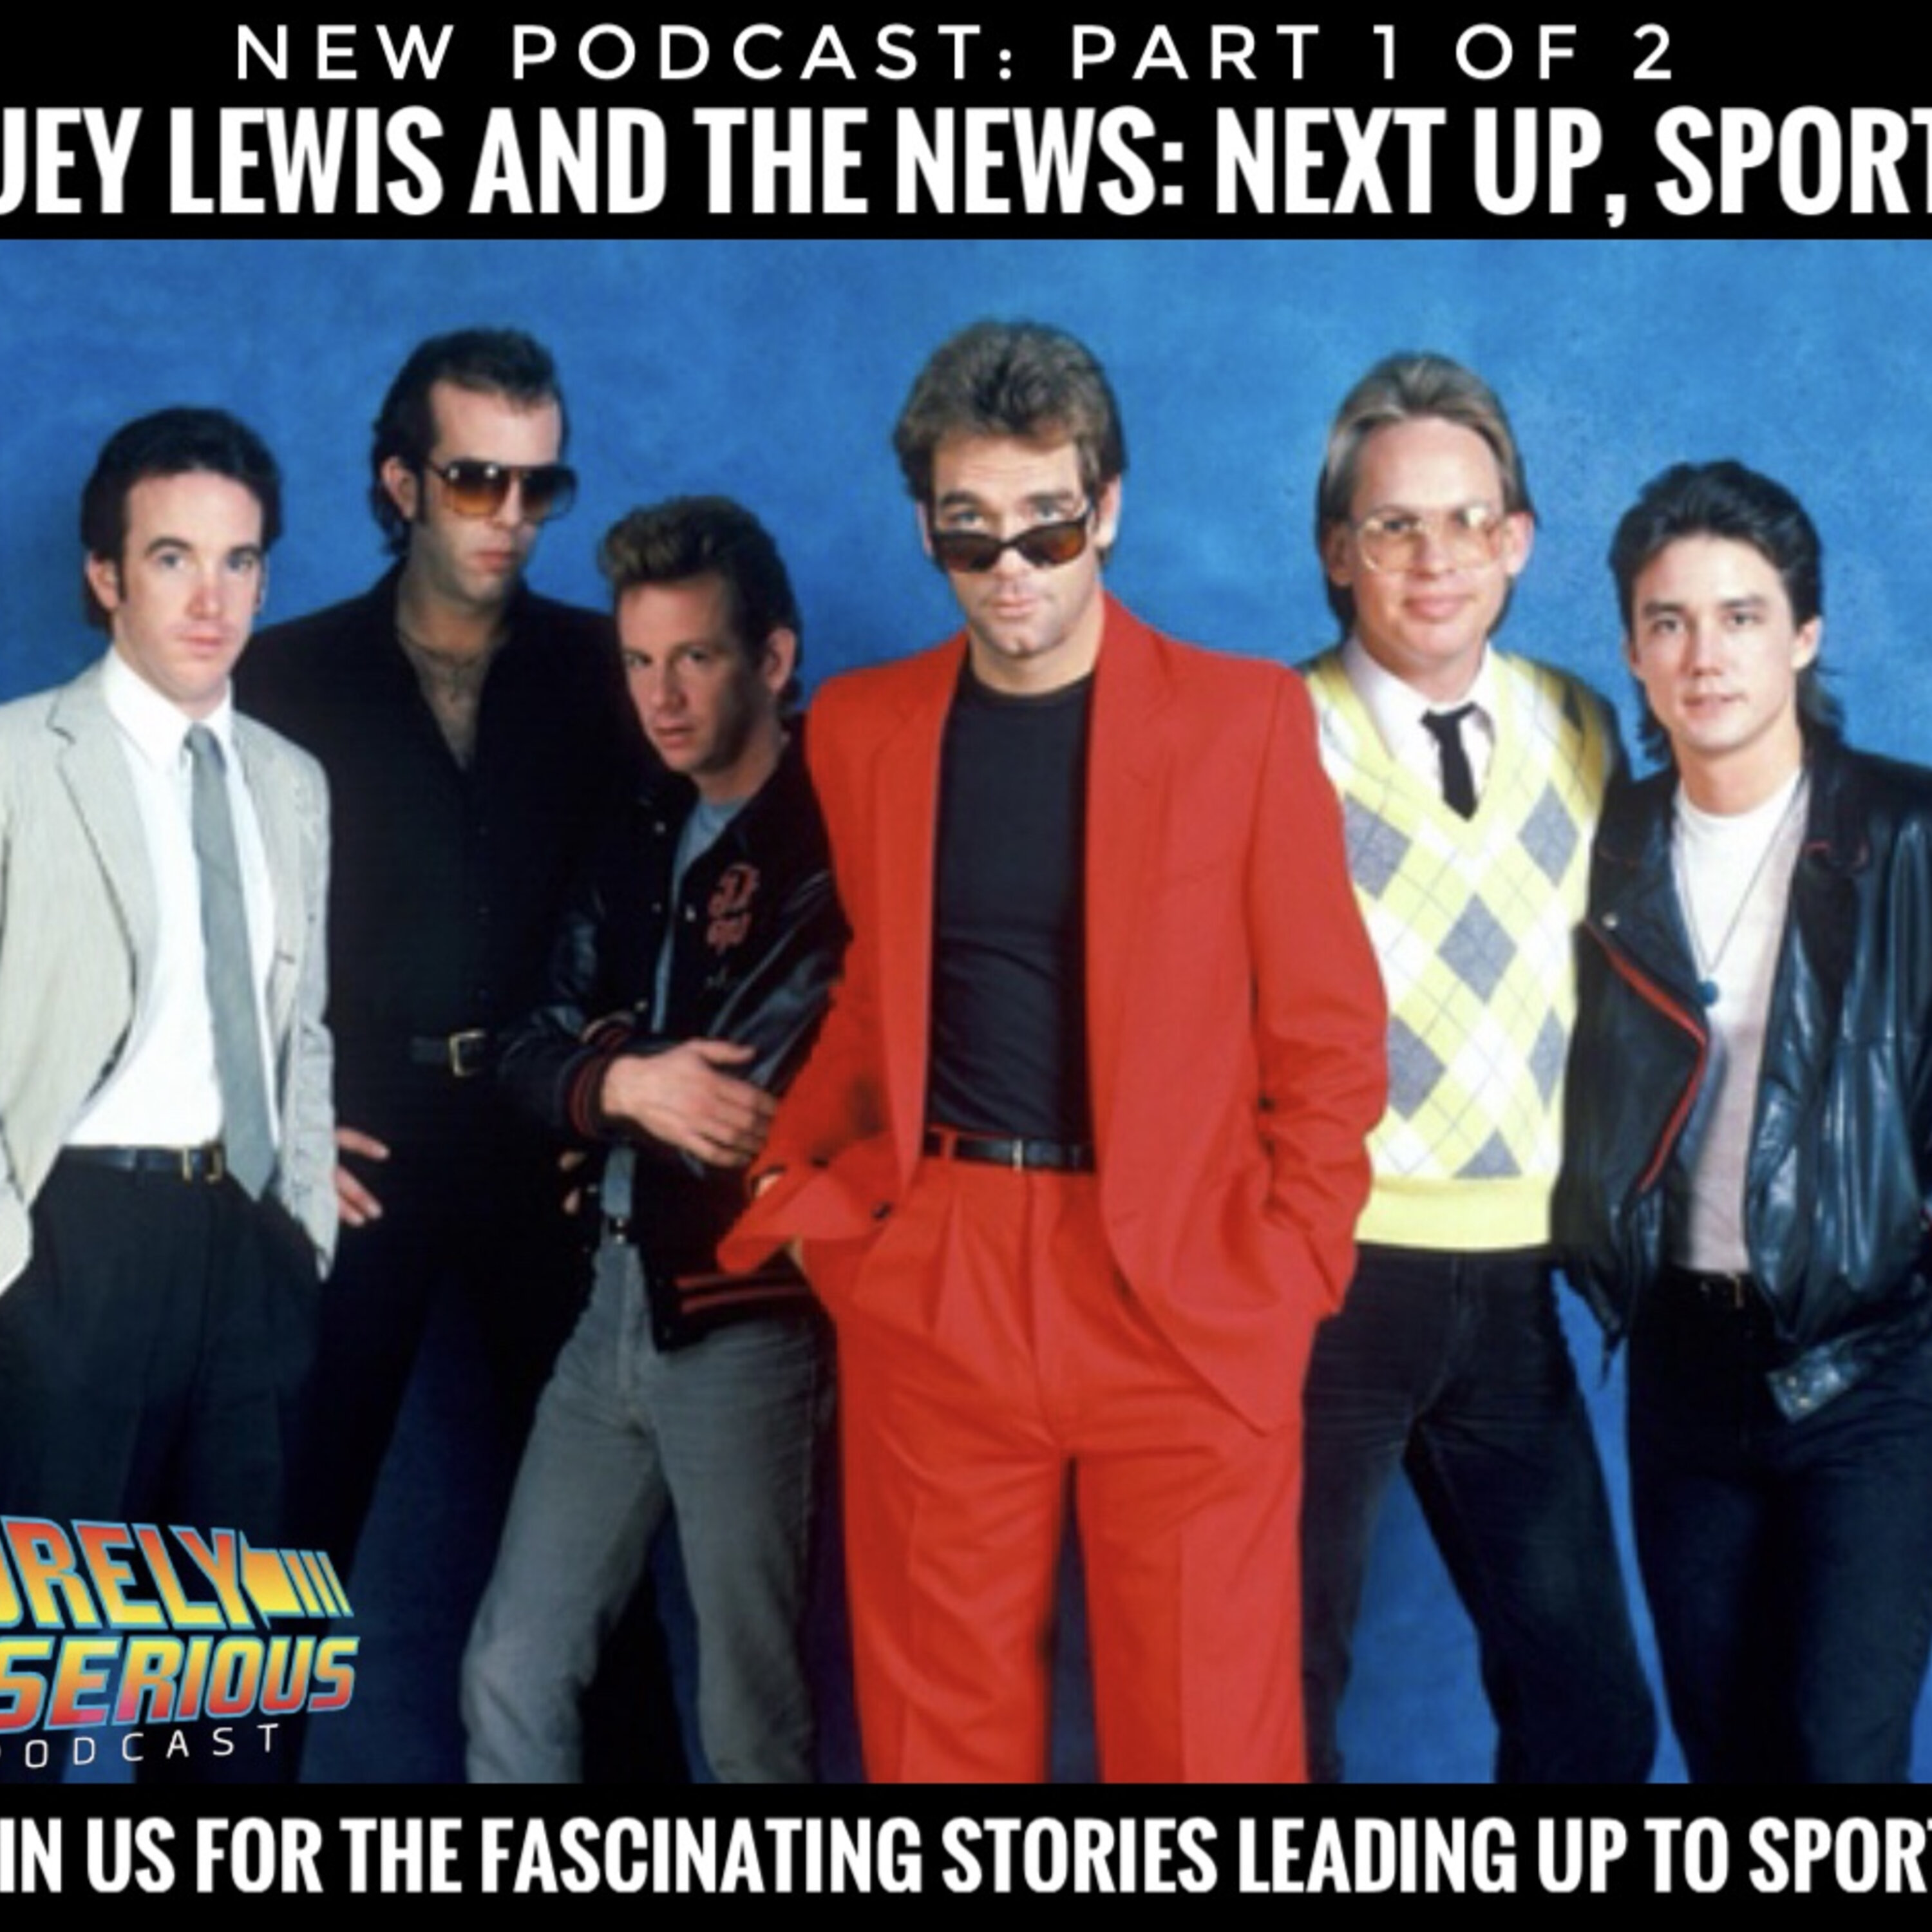 Huey Lewis and the News: Up Next Sports!